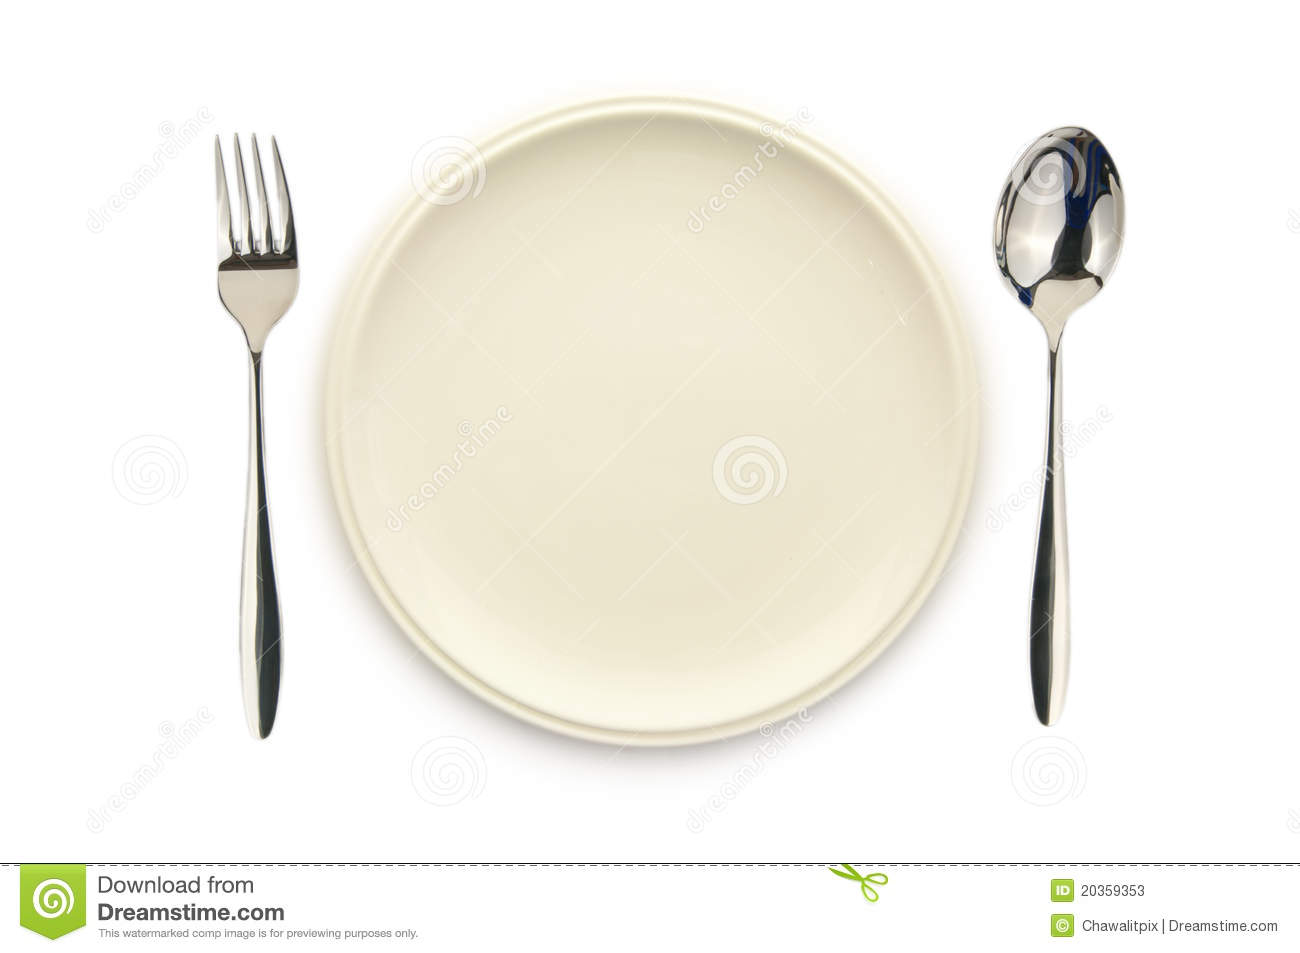 Top view of empty white dish spoon and fork on white background.